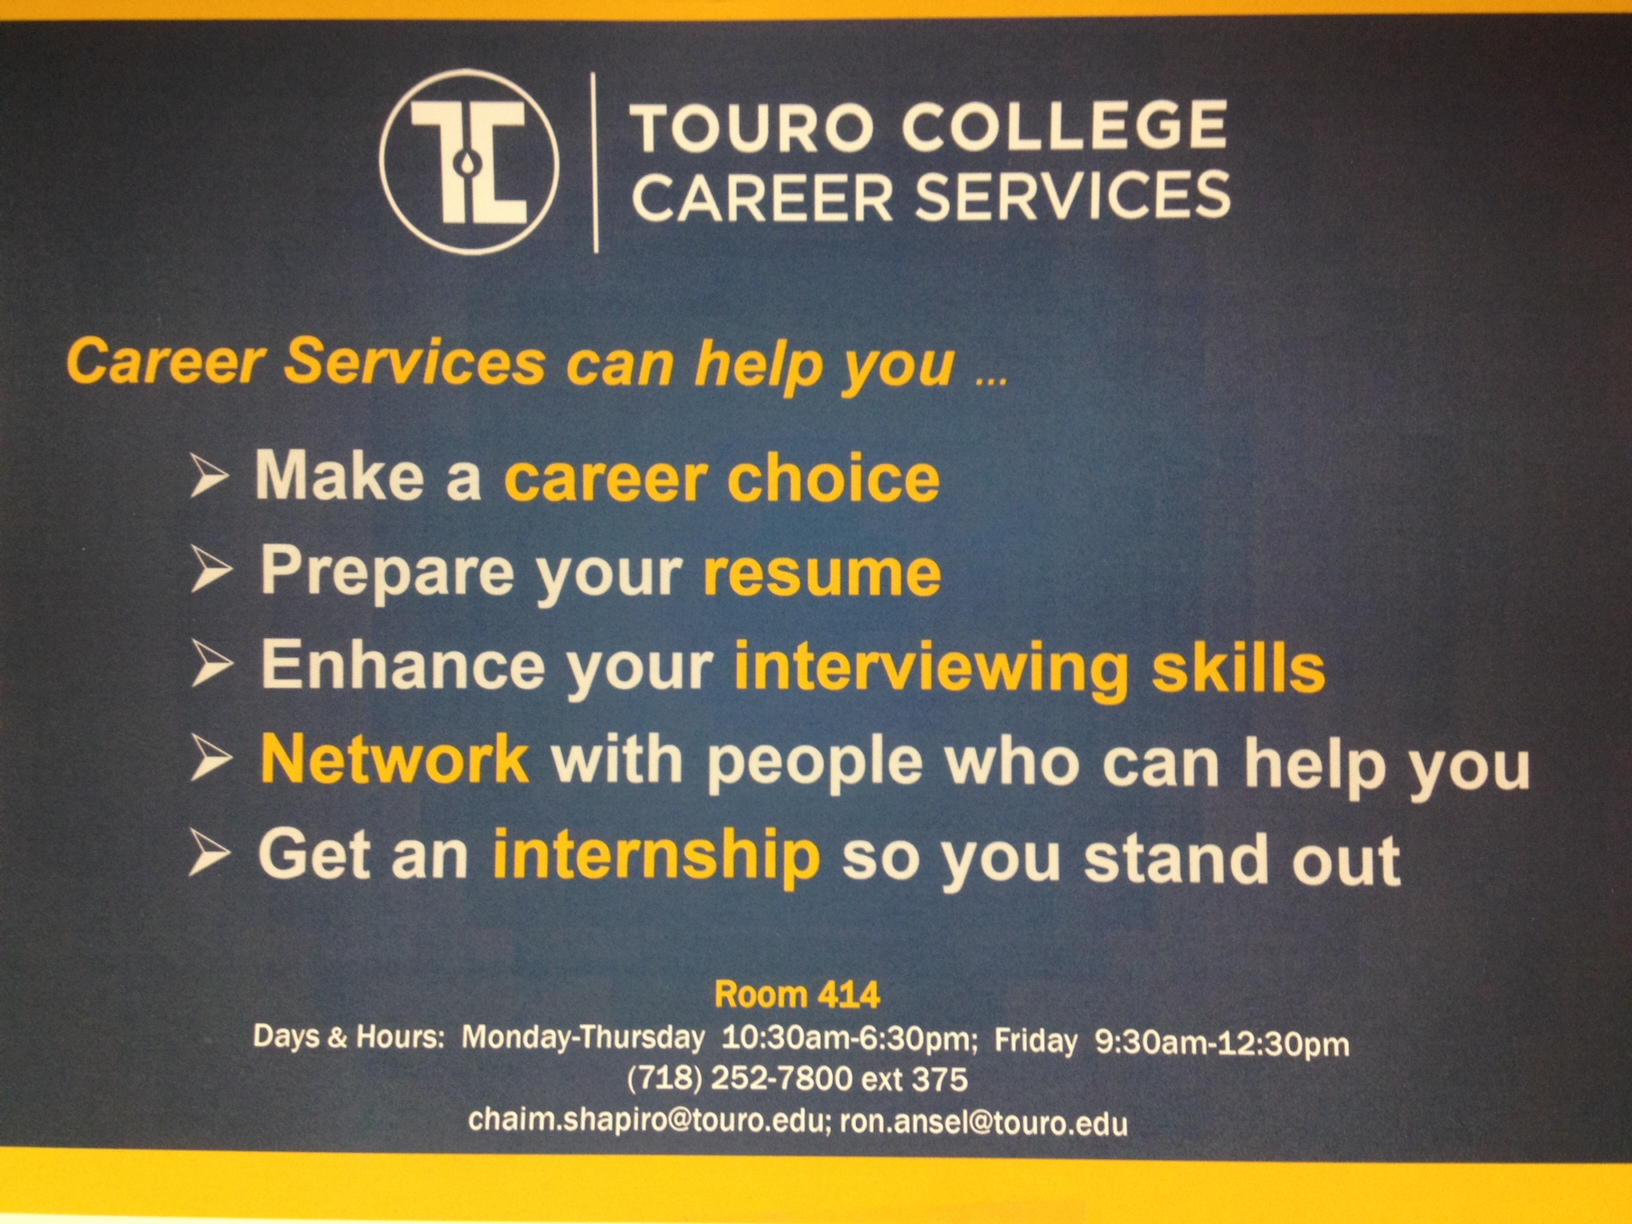 Touro College Career Services